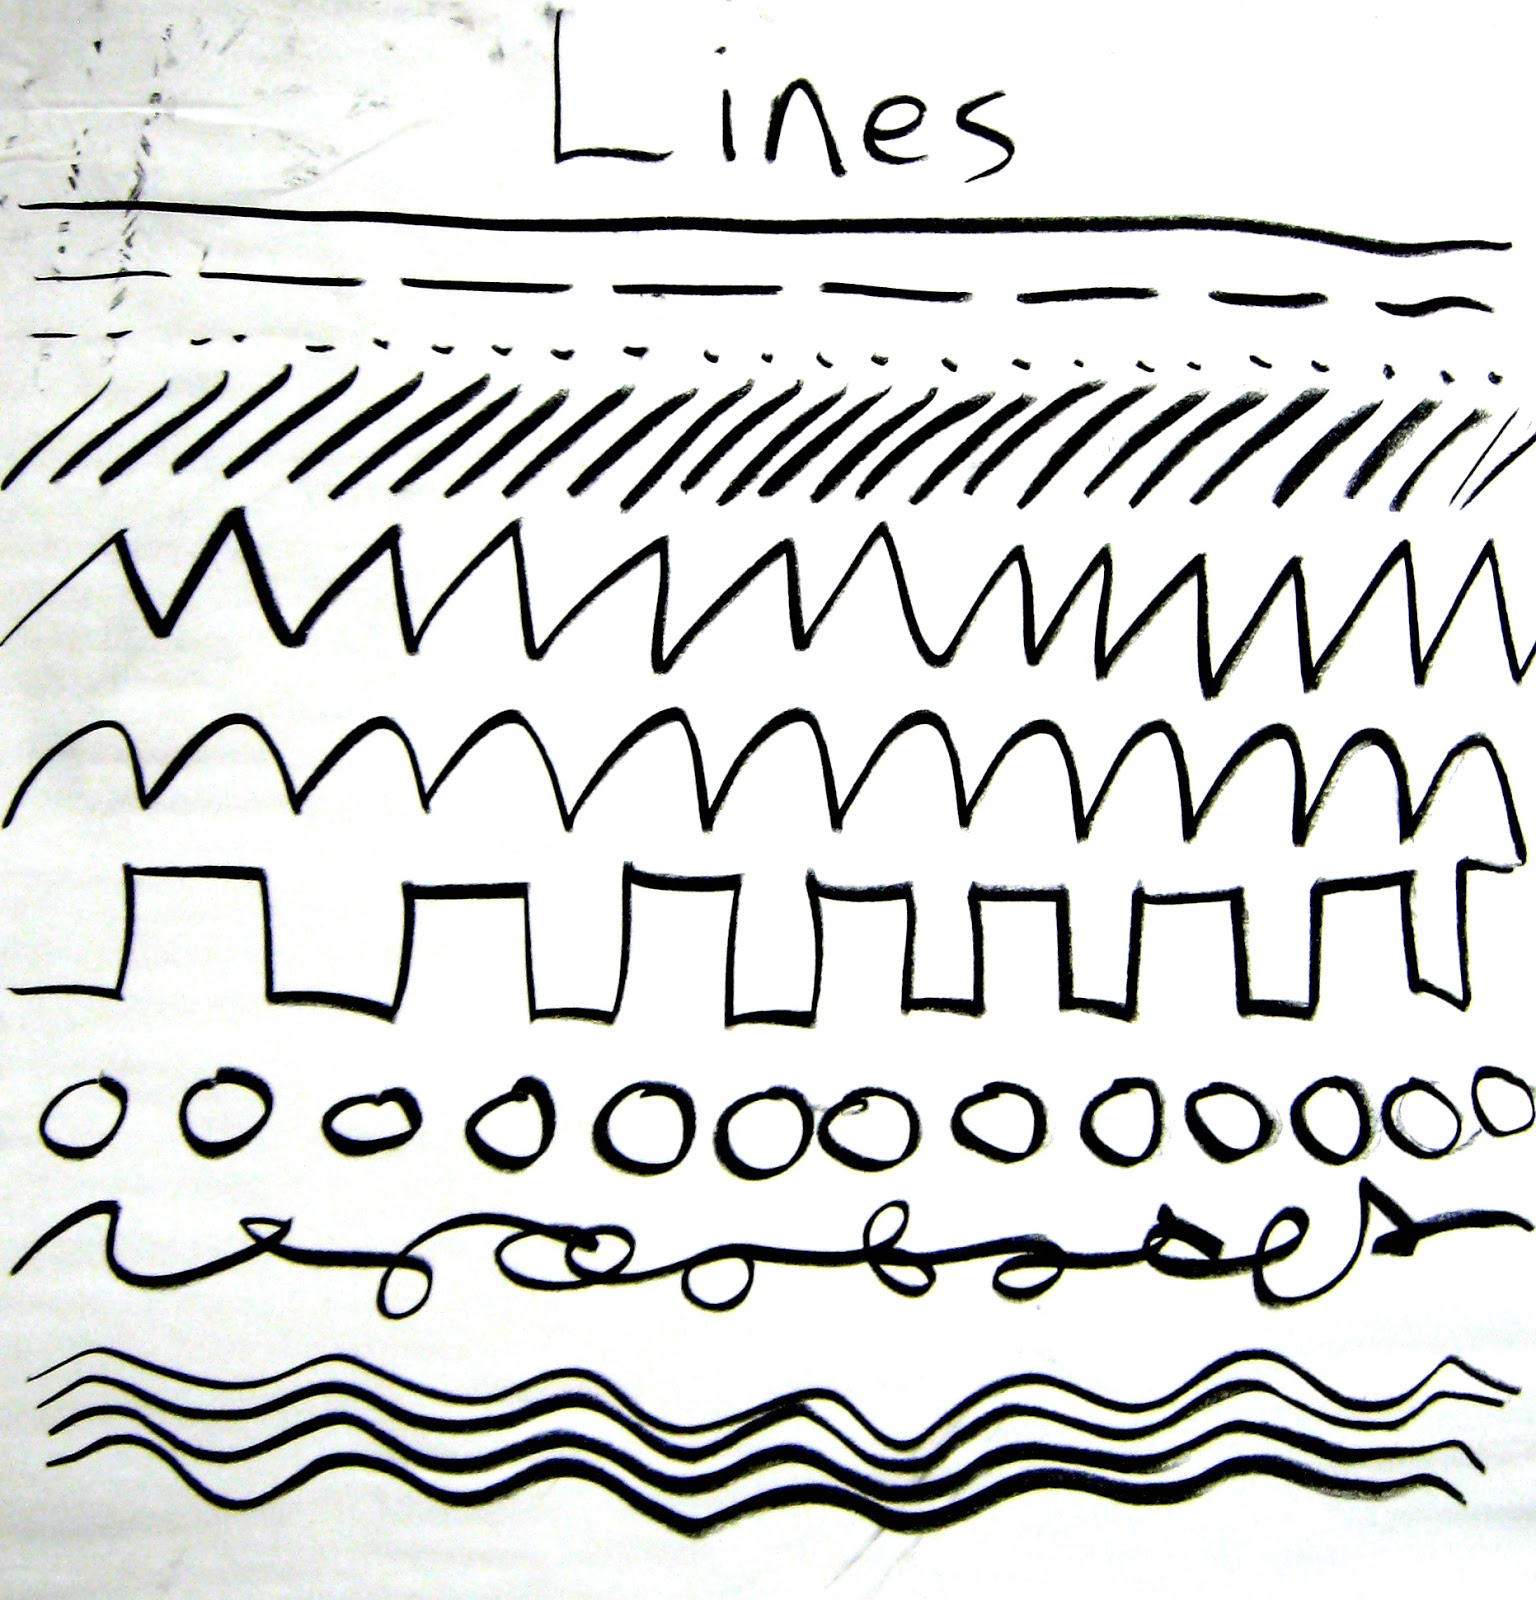 Mr Mueller S Art Class Ties Lines Patterns Repetition